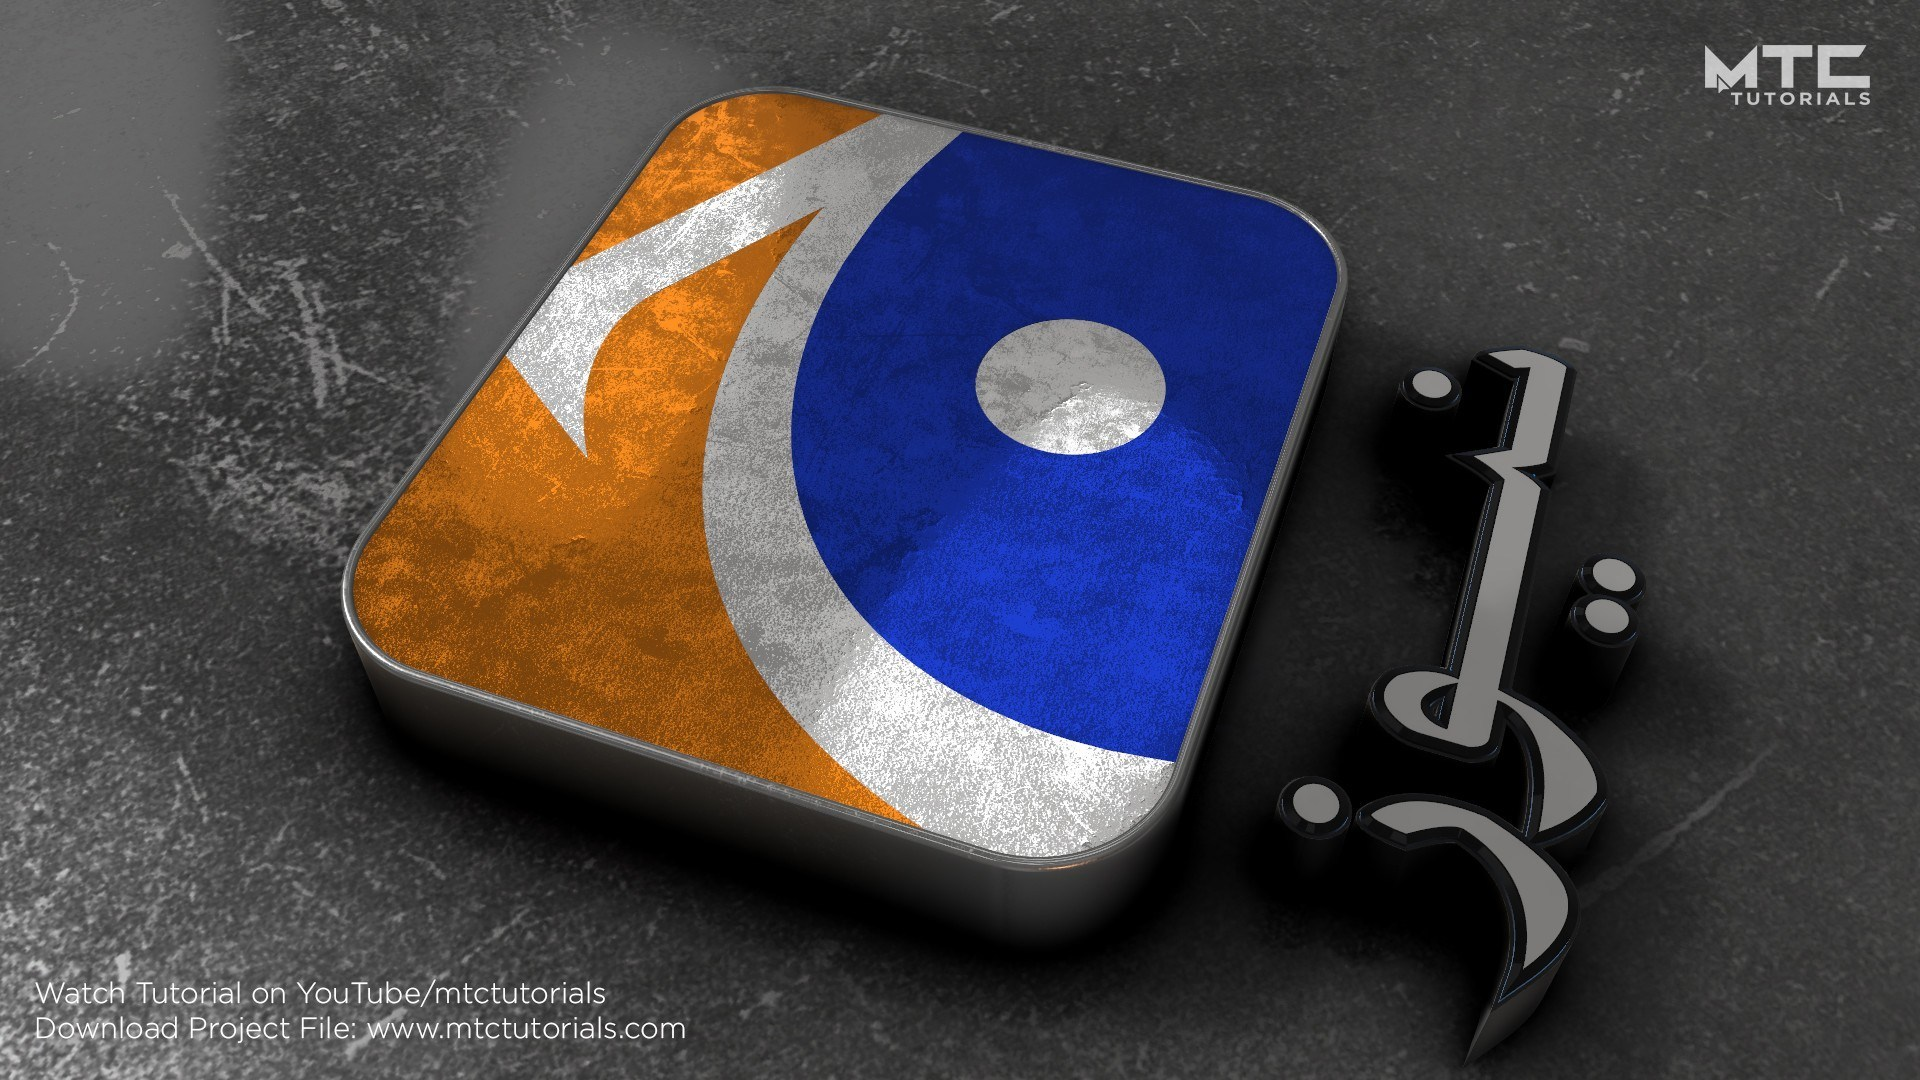 Geo news logo clipart jpg transparent library Download Geo News Adobe Illustrator Template - MTC TUTORIALS jpg transparent library